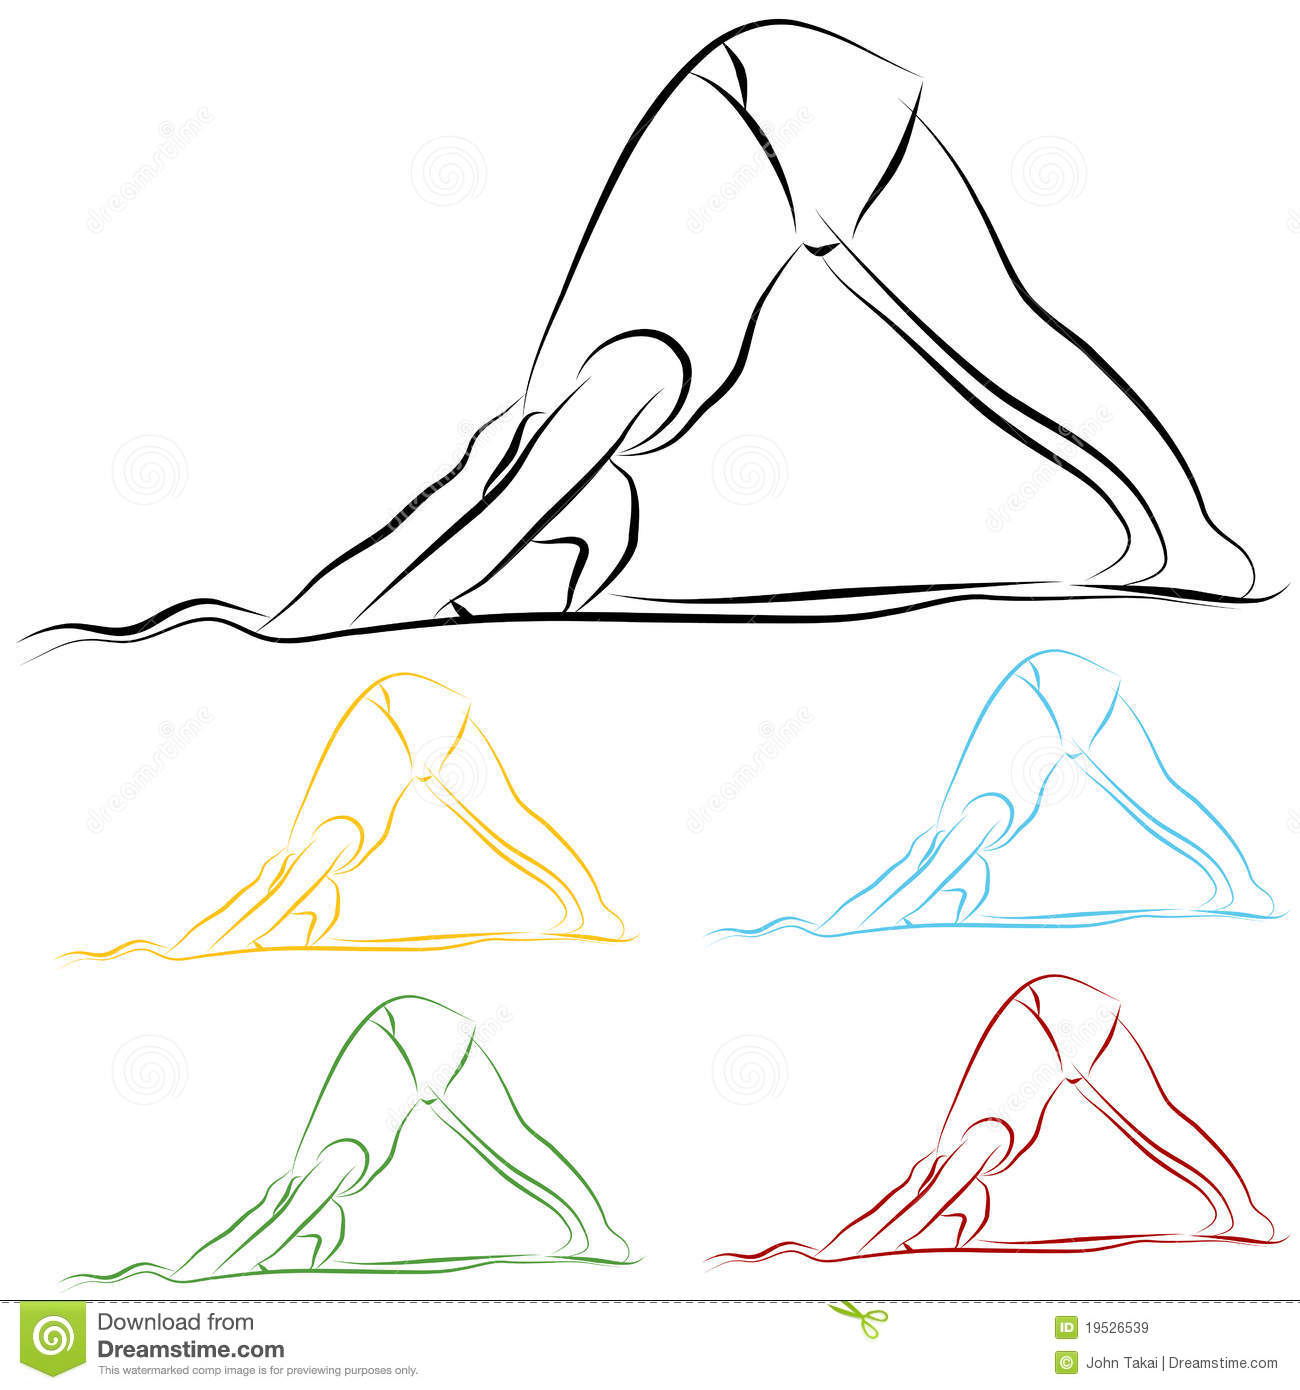 Line Drawing Yoga : Yoga stretch line drawing royalty free stock images